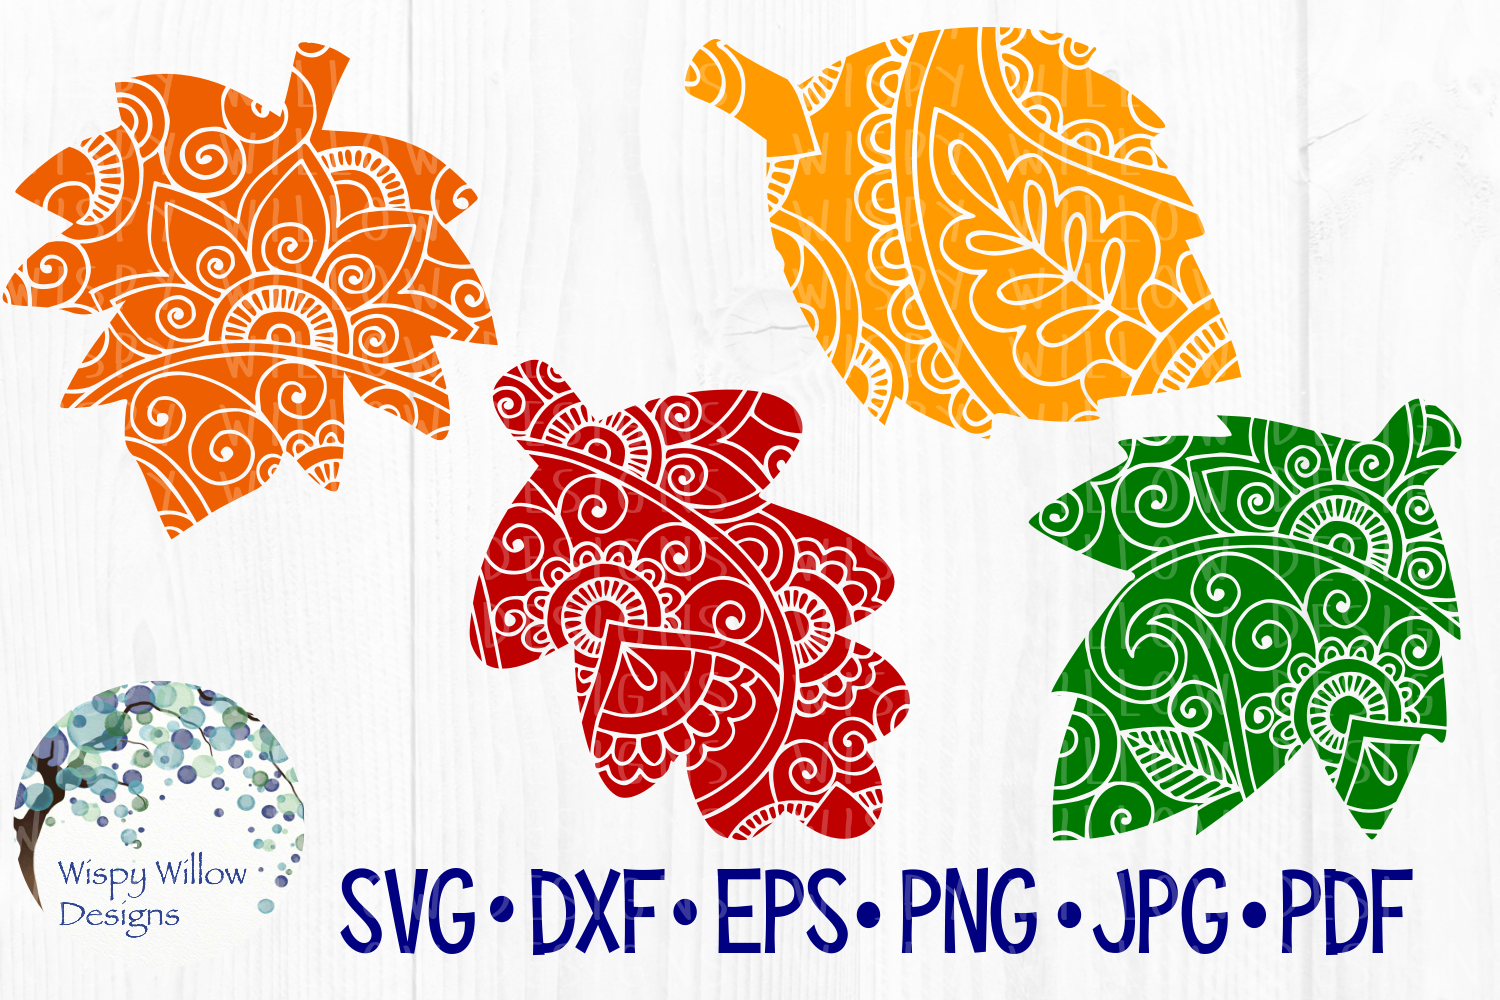 Download Free Fall Leaves Falling Leaf Zentangle Mandala Cut File Graphic for Cricut Explore, Silhouette and other cutting machines.